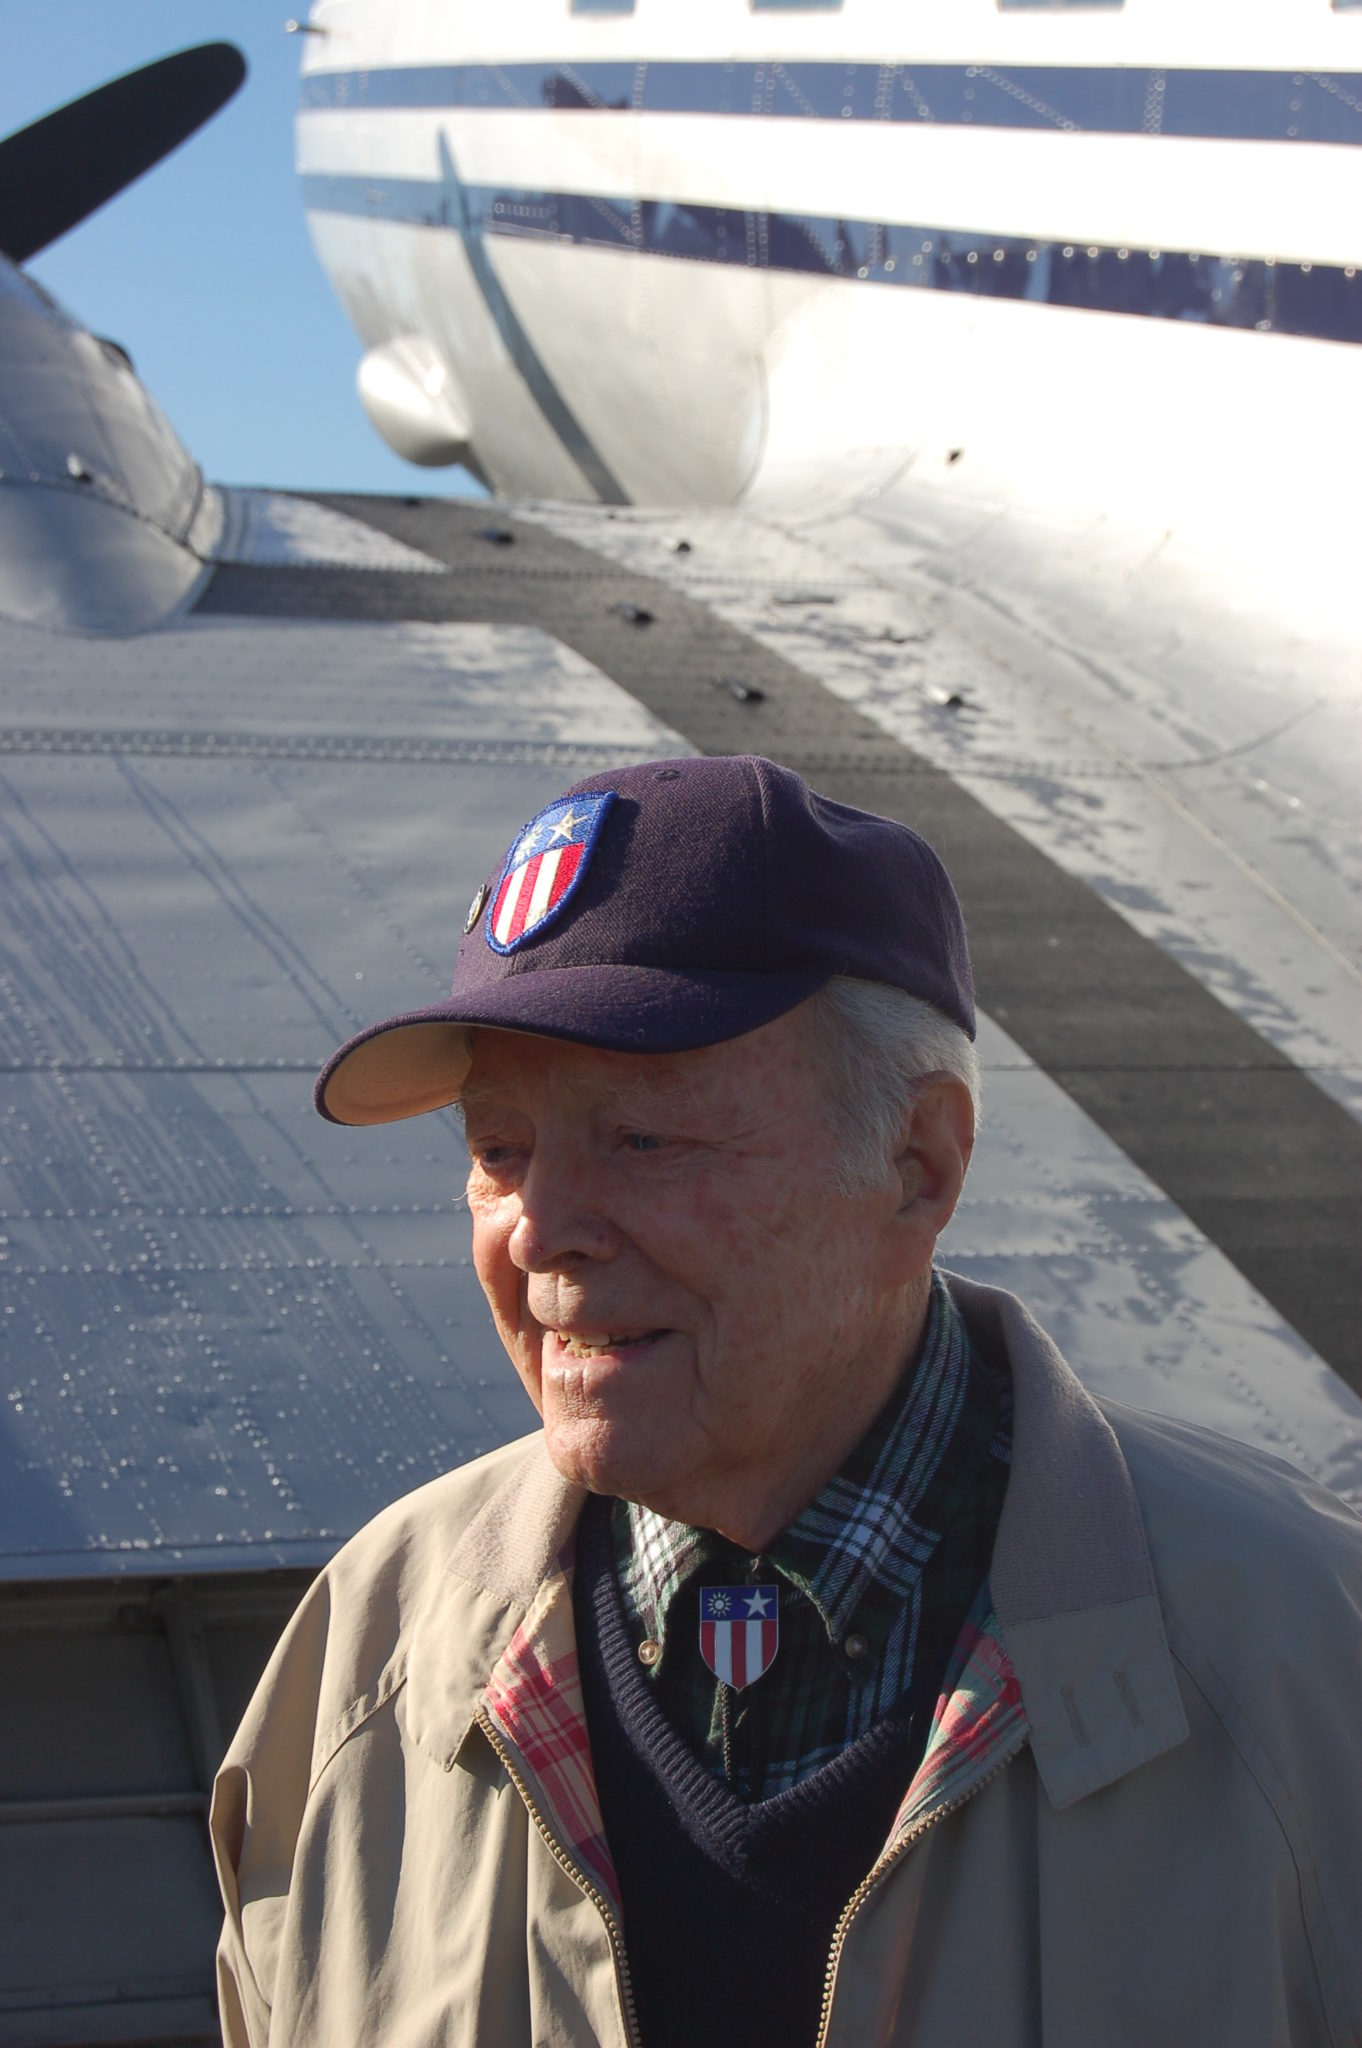 Peter Goutier, 100, is one of only two living members of China National Aviation Corp's pilot group from WW II. Behind him is probably the only surviving Douglas C-47/DC-3 from CNAC. Photo by Scott Hamilton